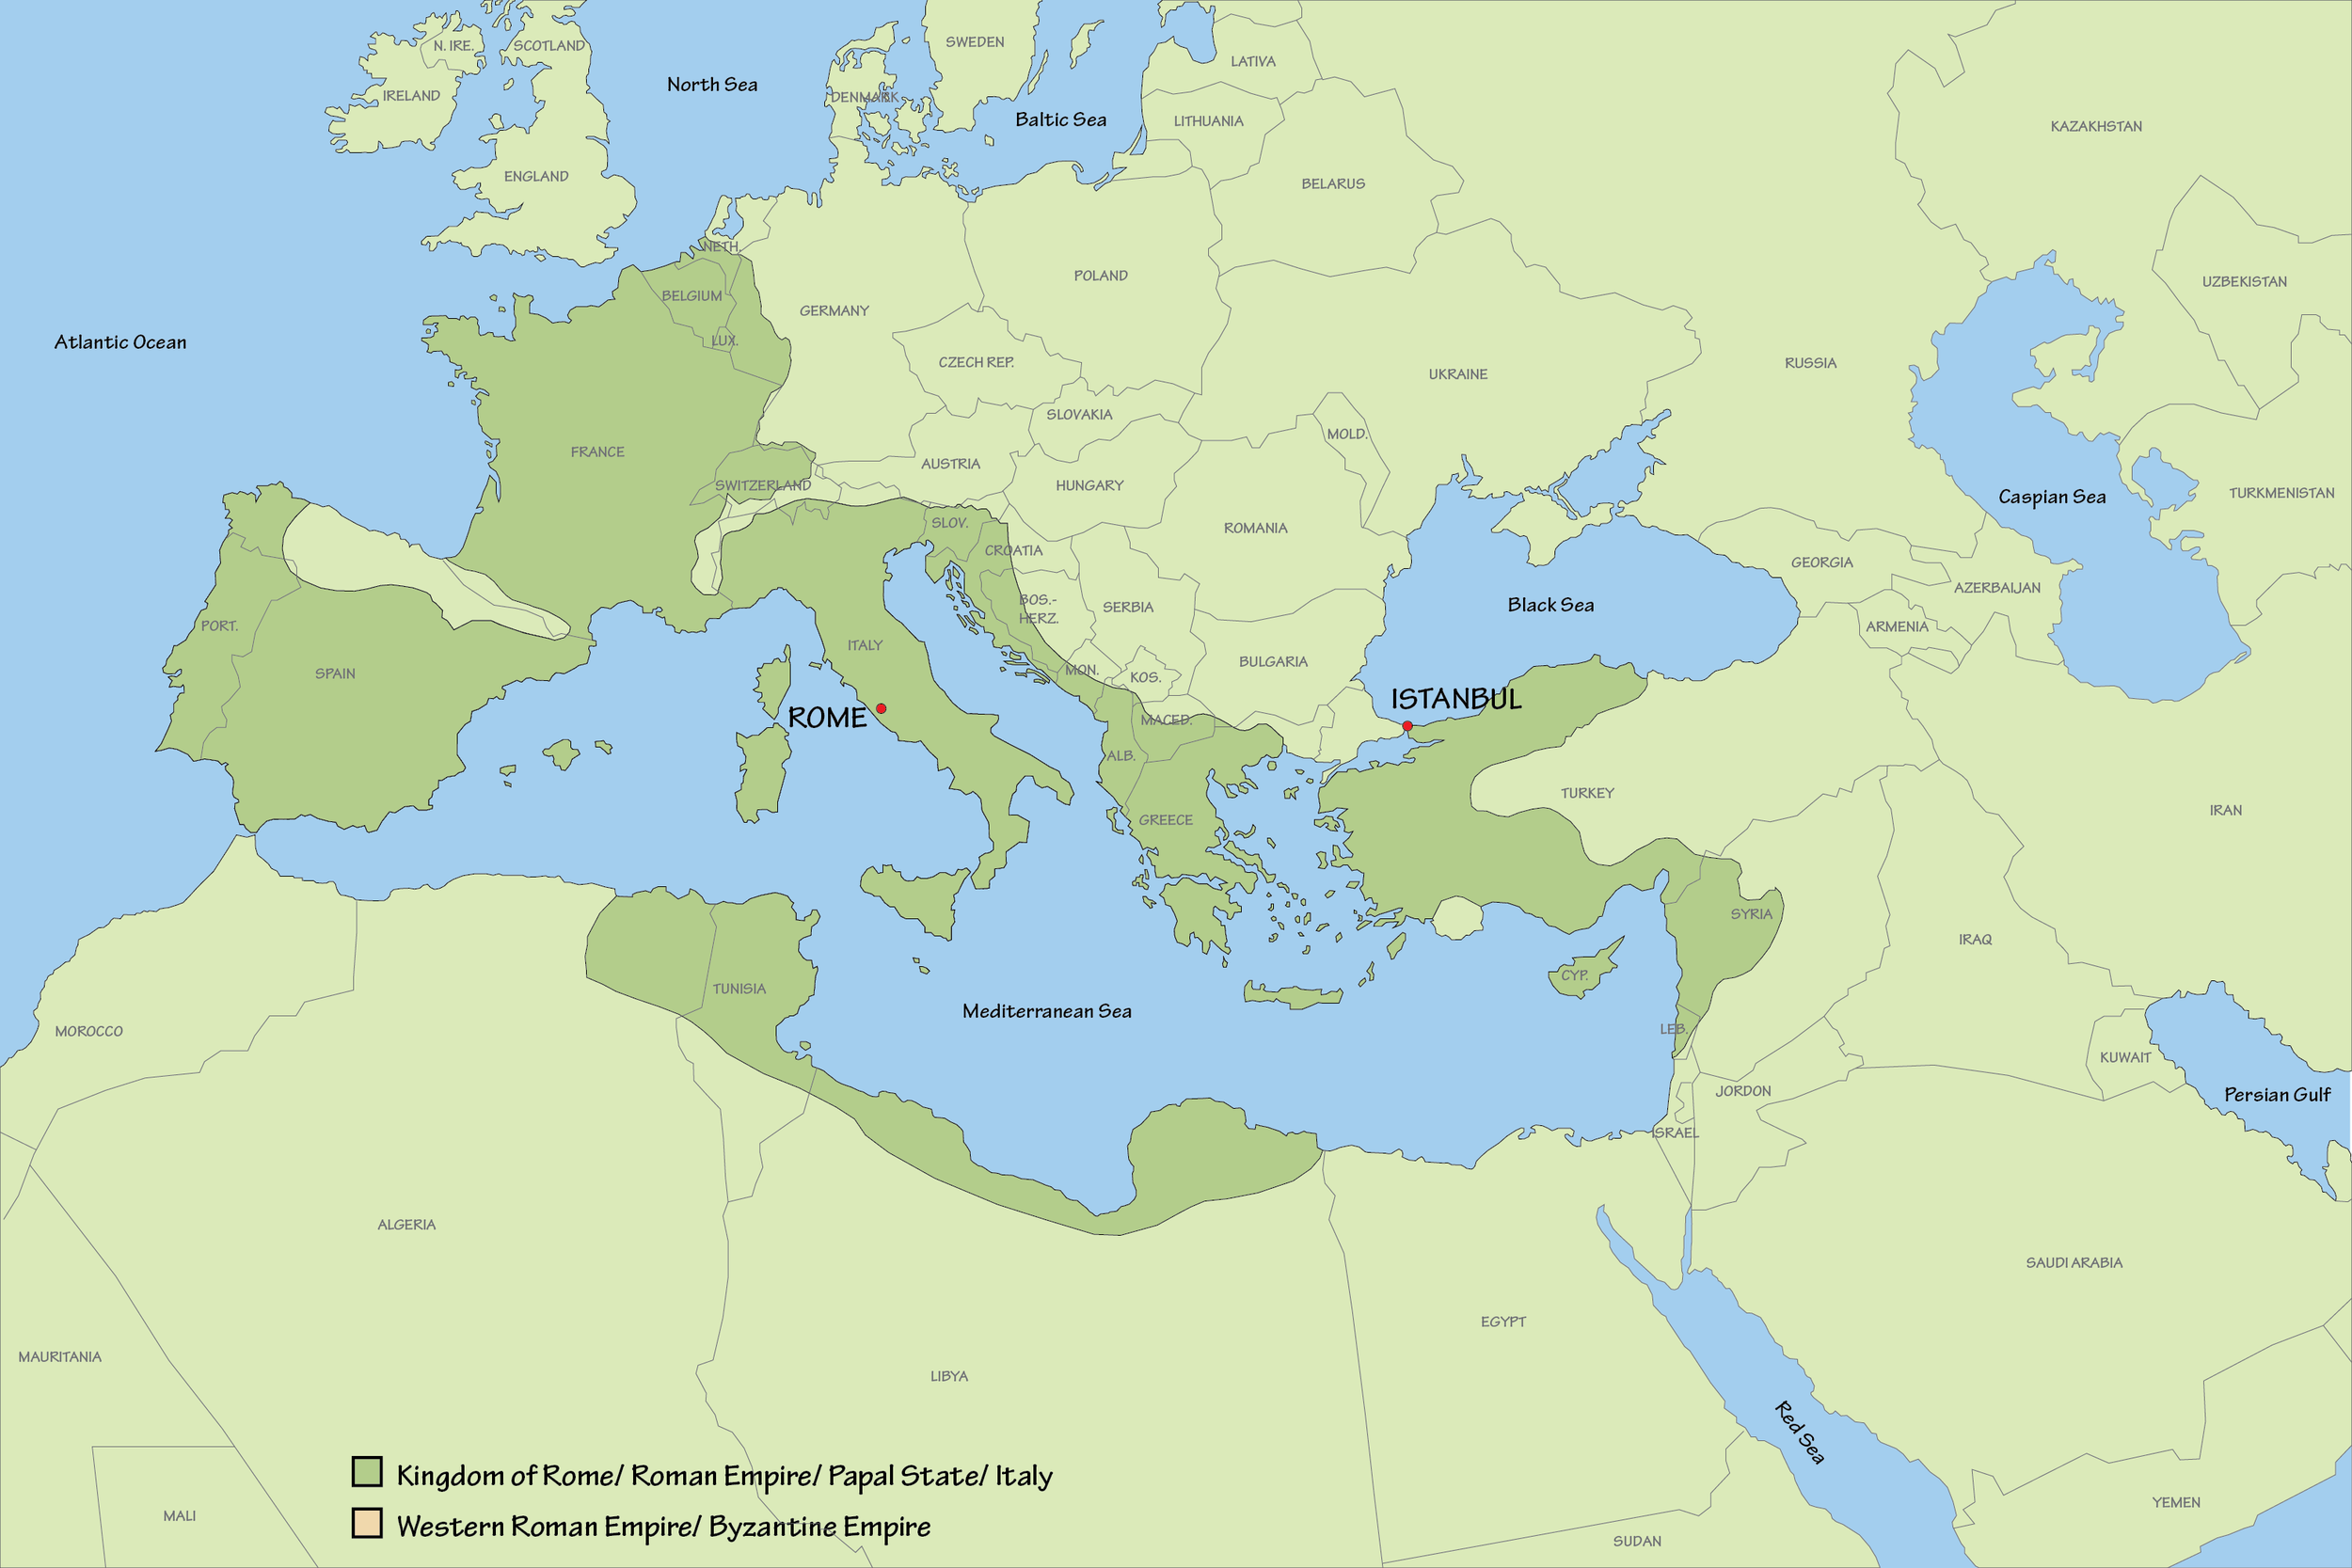 Exapnsion of Roman Empire Diagram_06-01.png